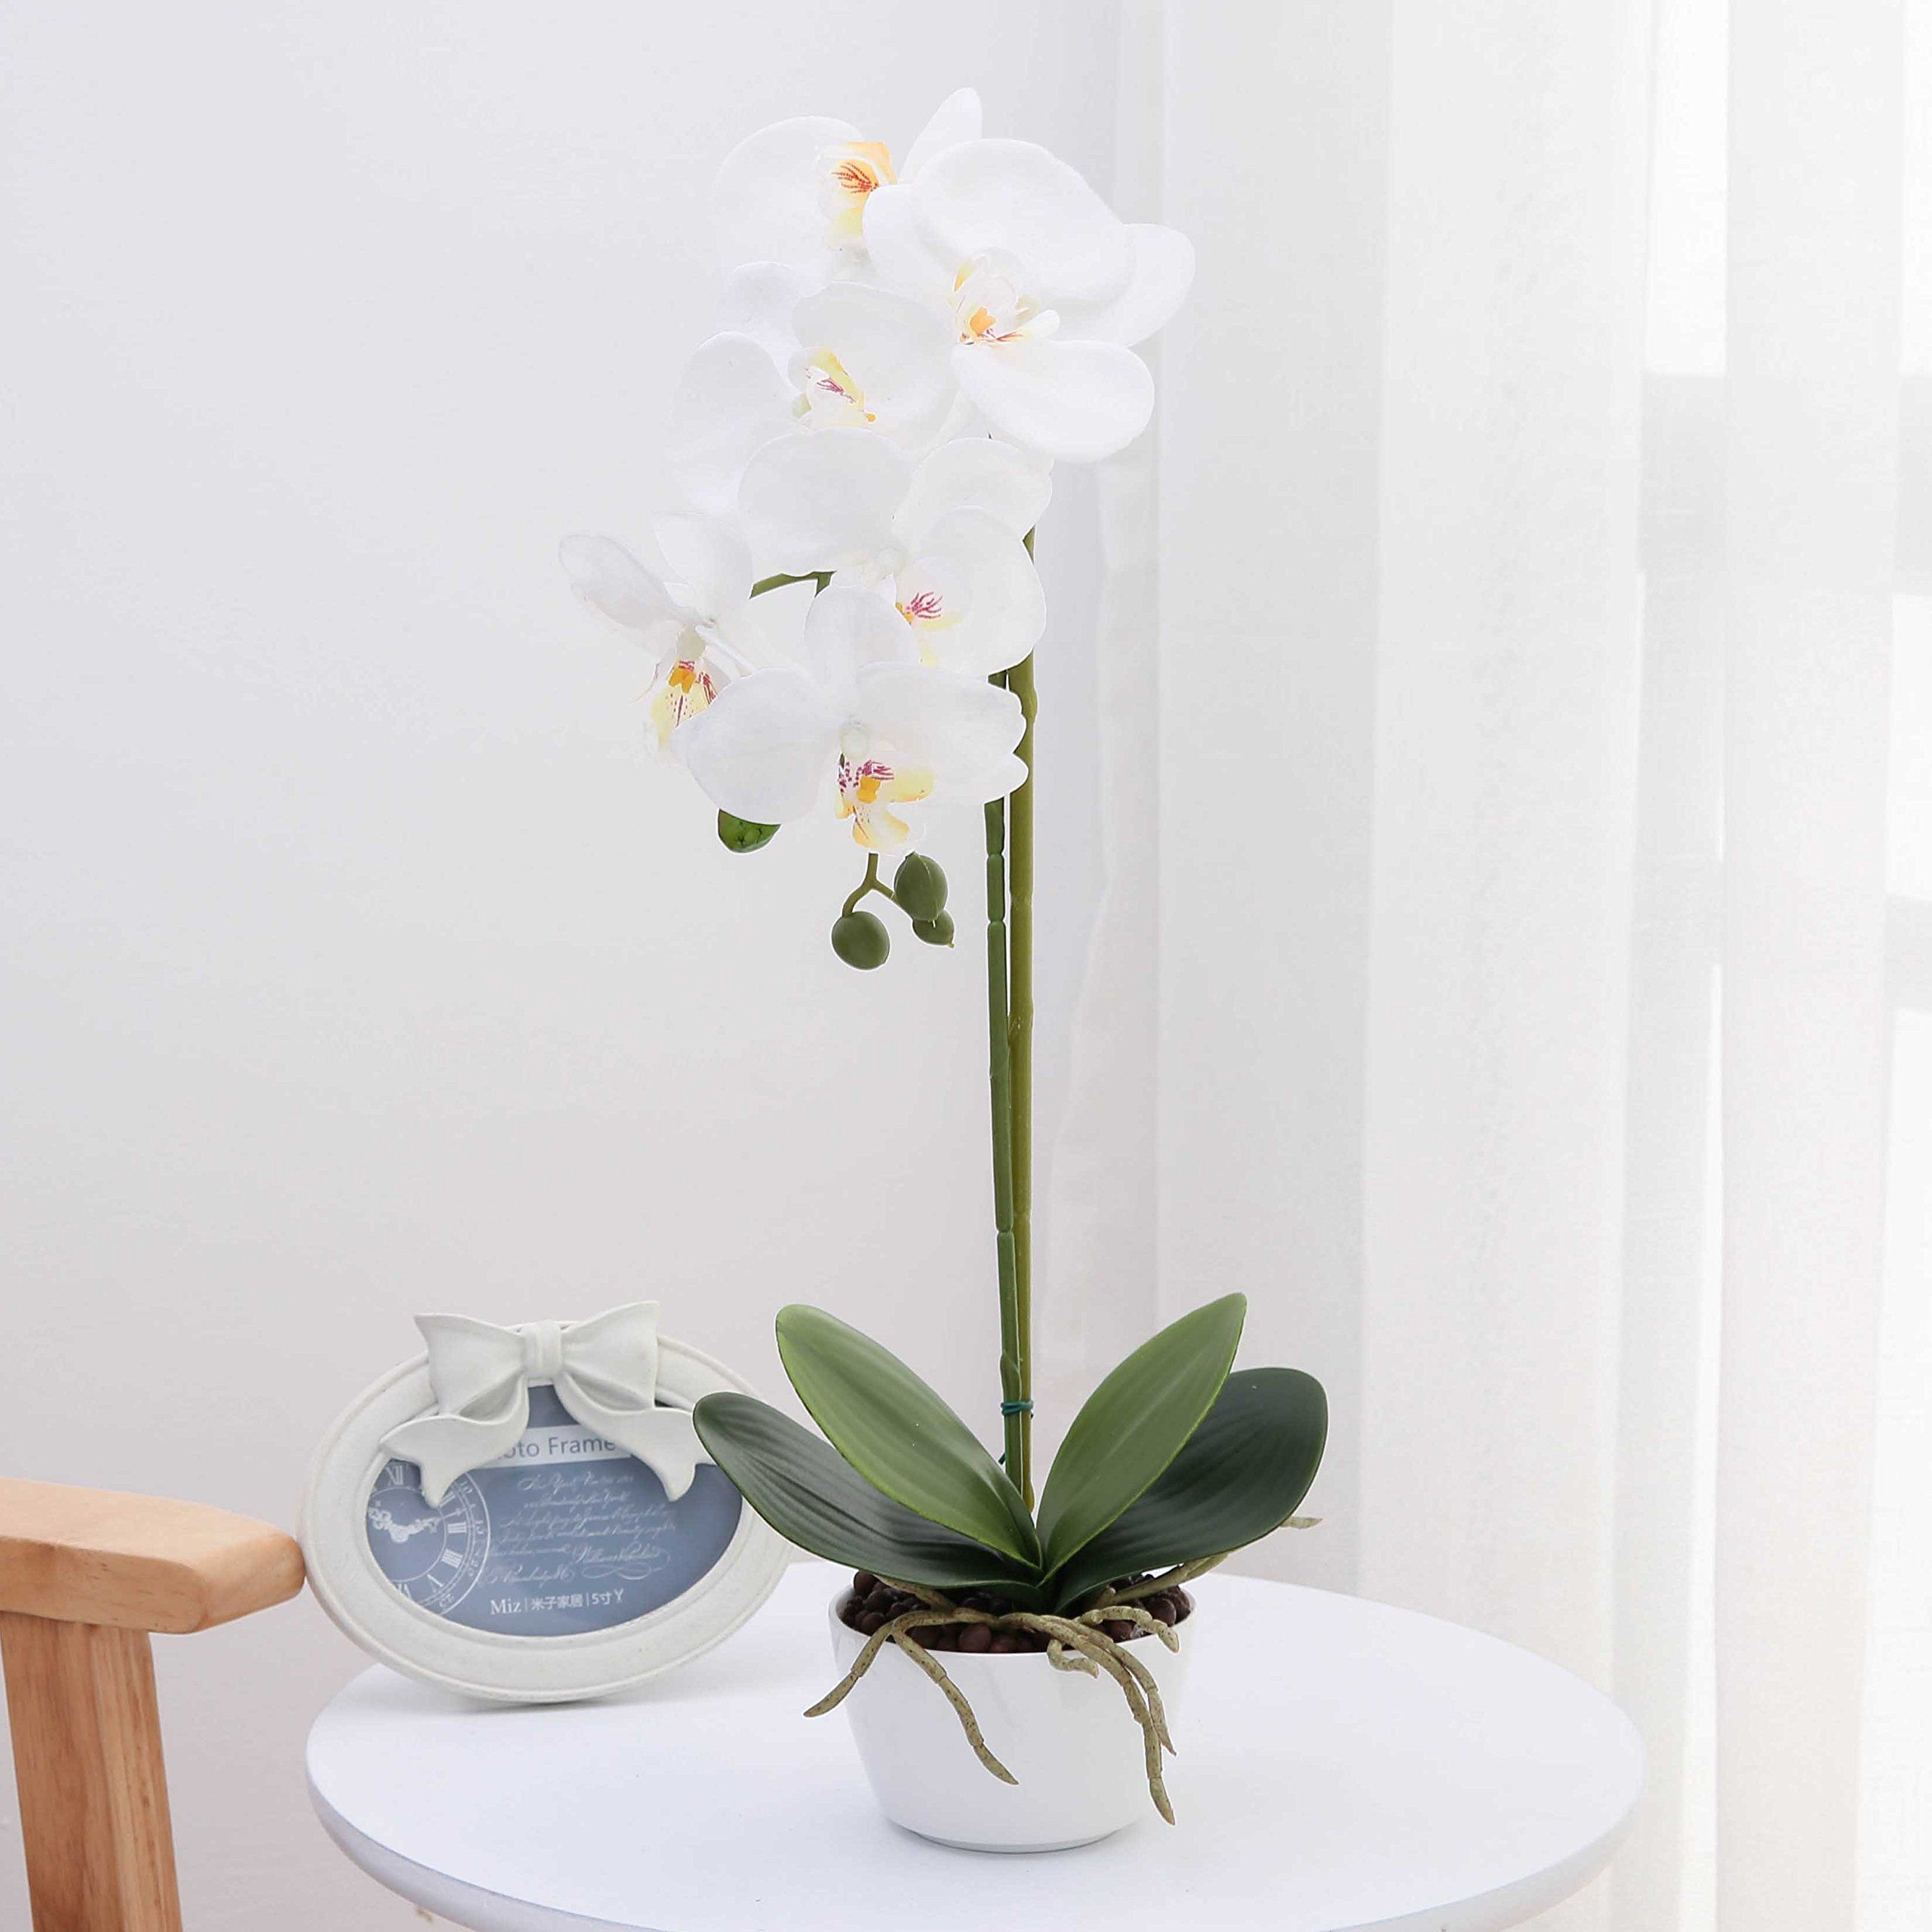 Livilan Silk Phalaenopsis Flower Arrangement Artificial Orchid Flowers With White Orchid Flower Arrangements Artificial Orchids Artificial Flower Arrangements